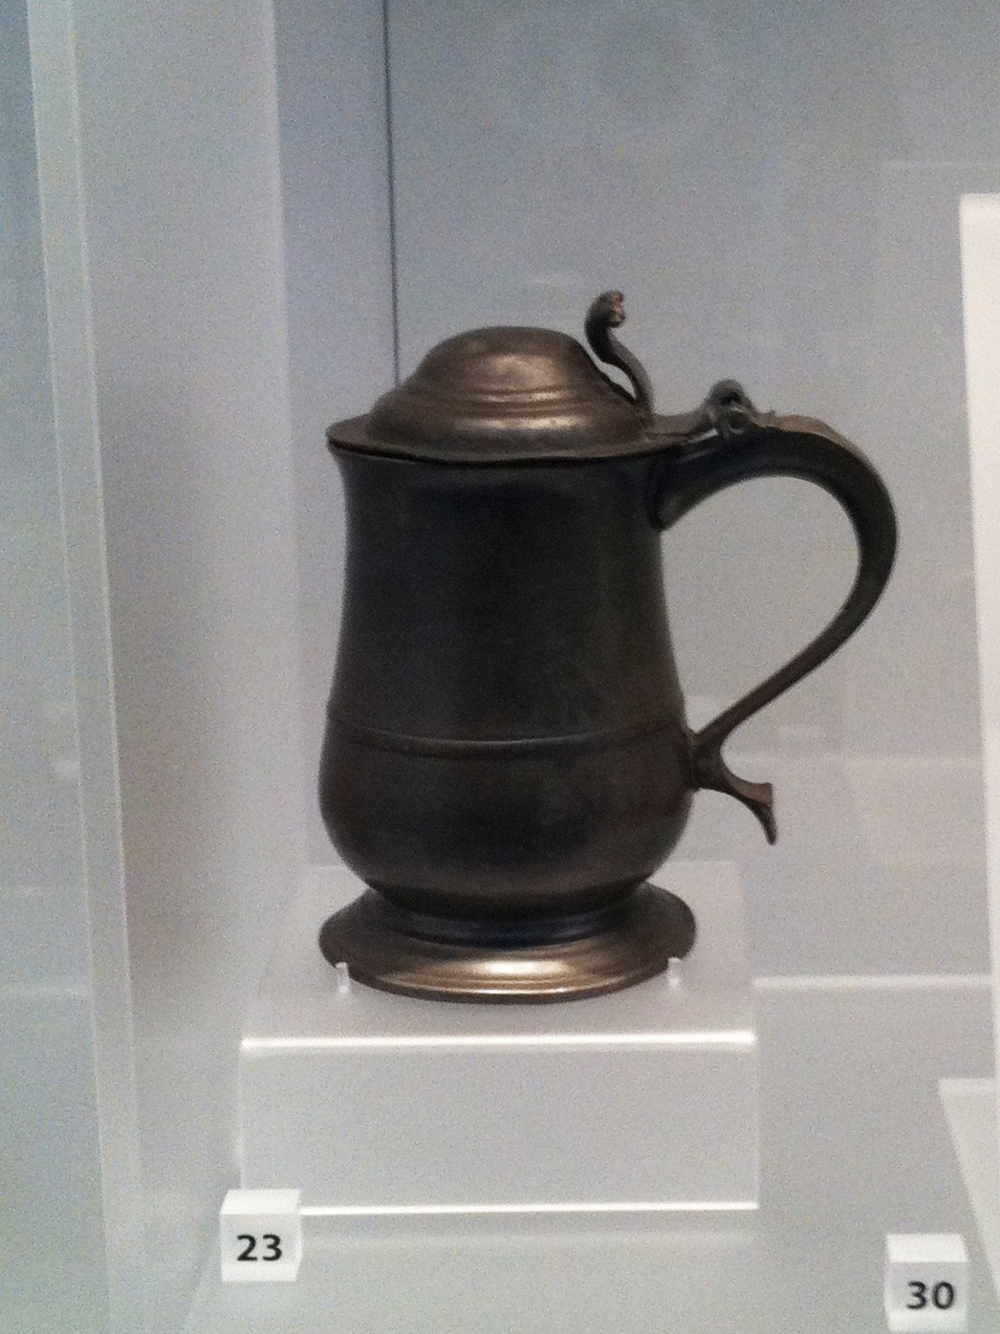 Pewter tankard. Made in the midlands in approx. 1720-40